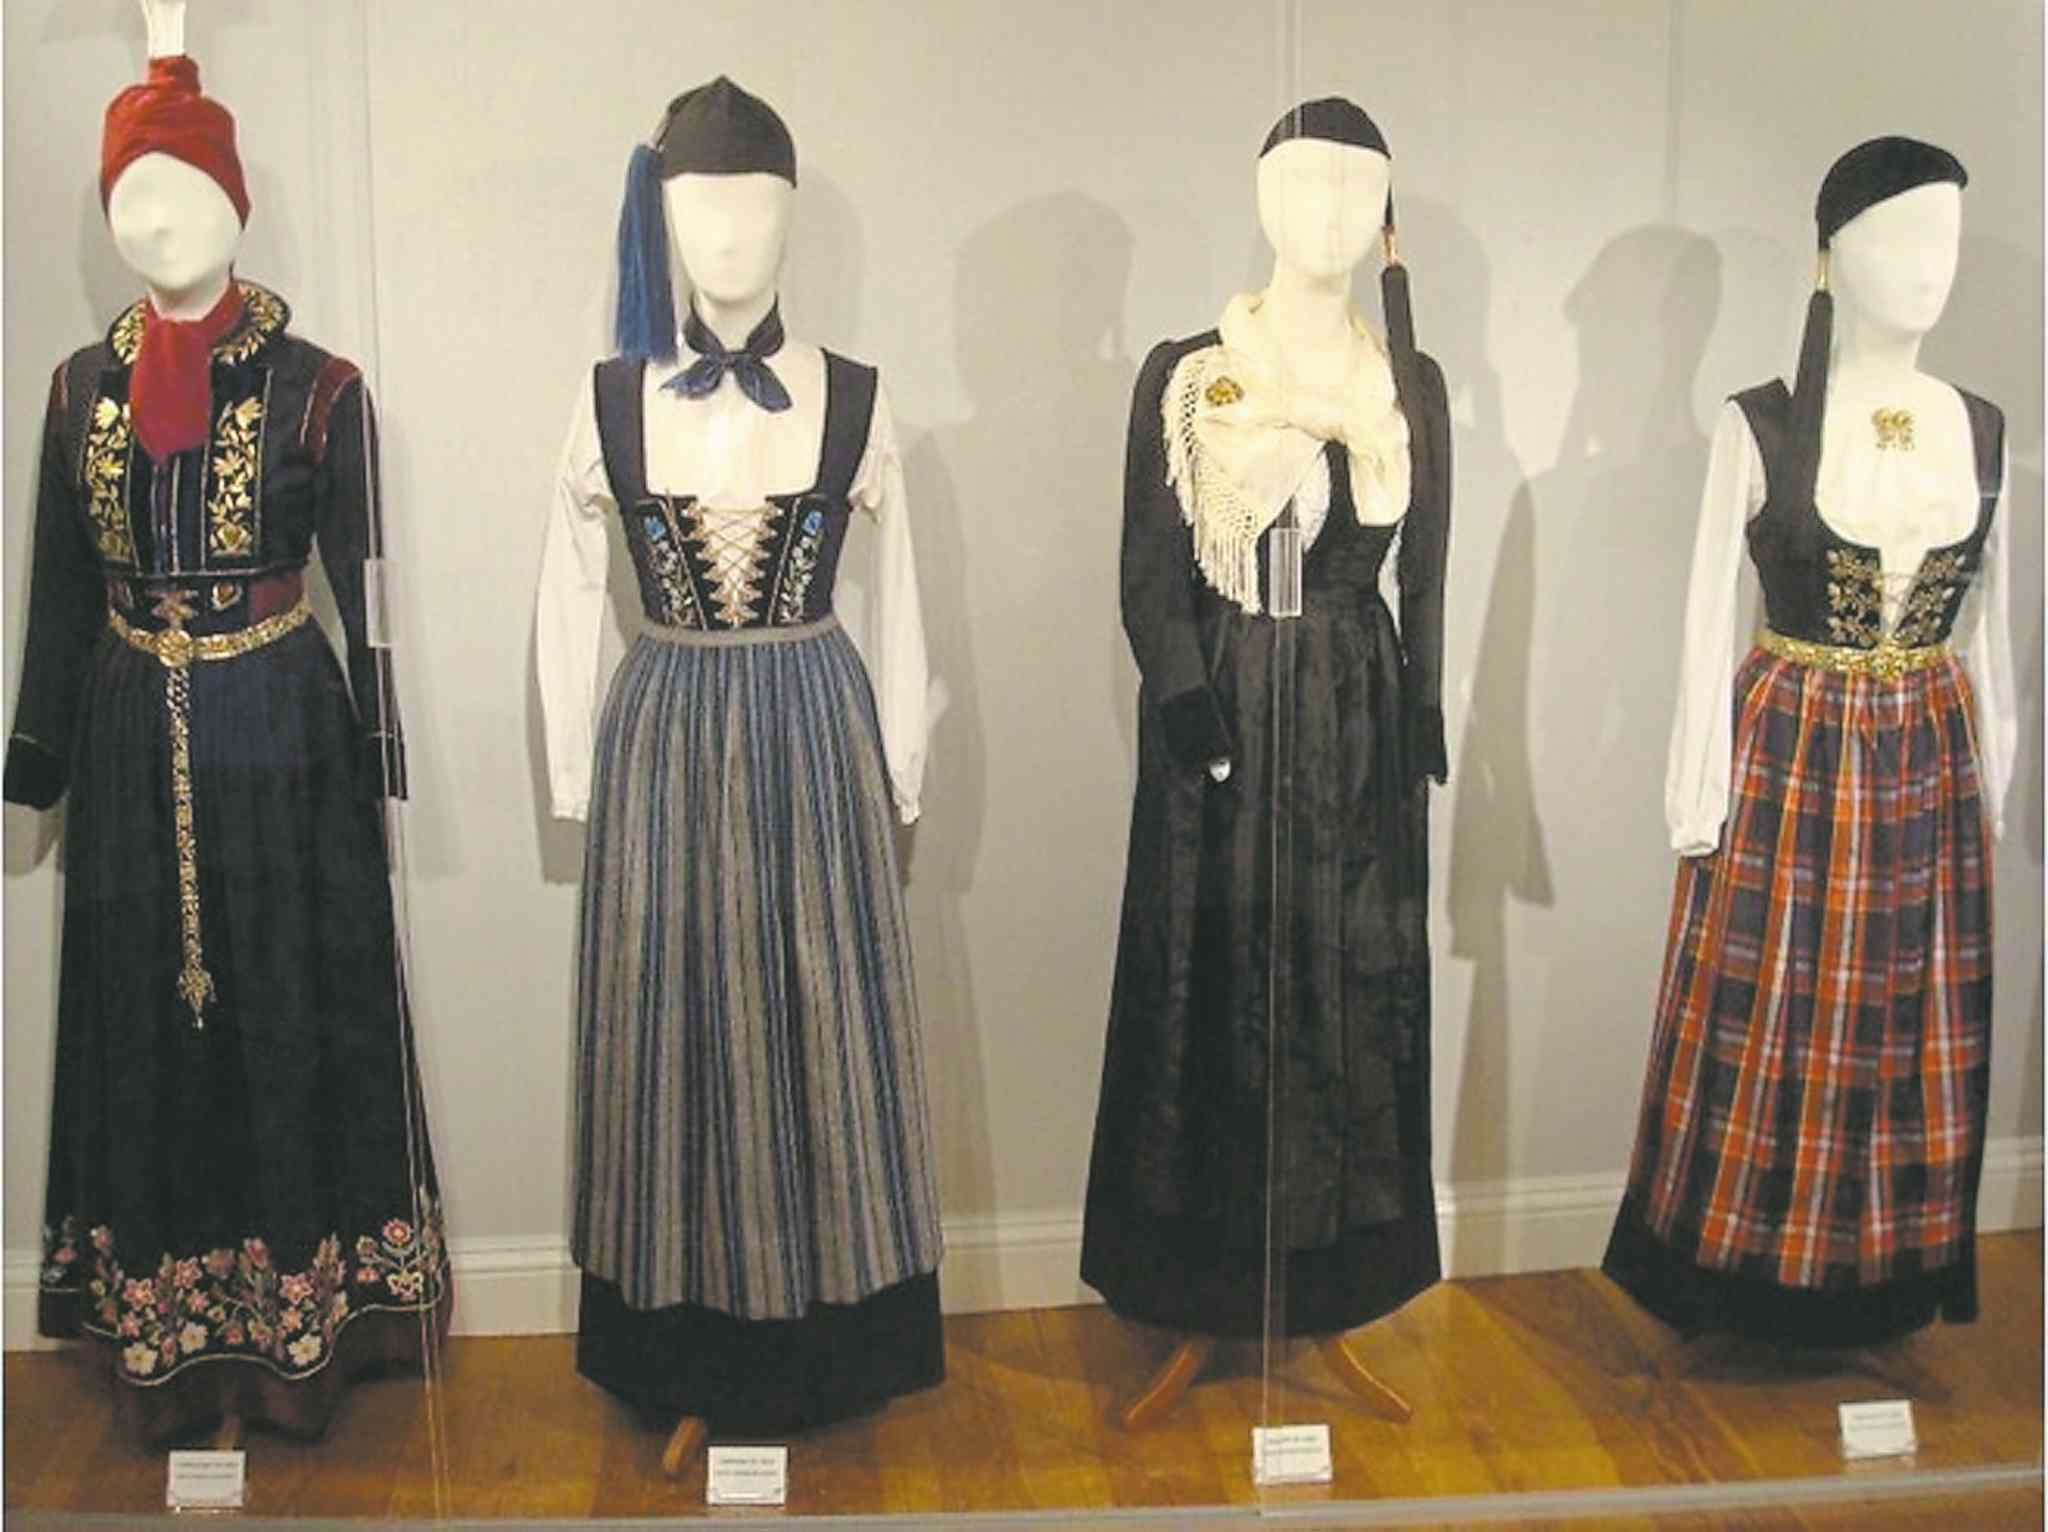 Traditional garments will be modelled with contemporary designs at the Icelandic Festival fashion show in Gimli.